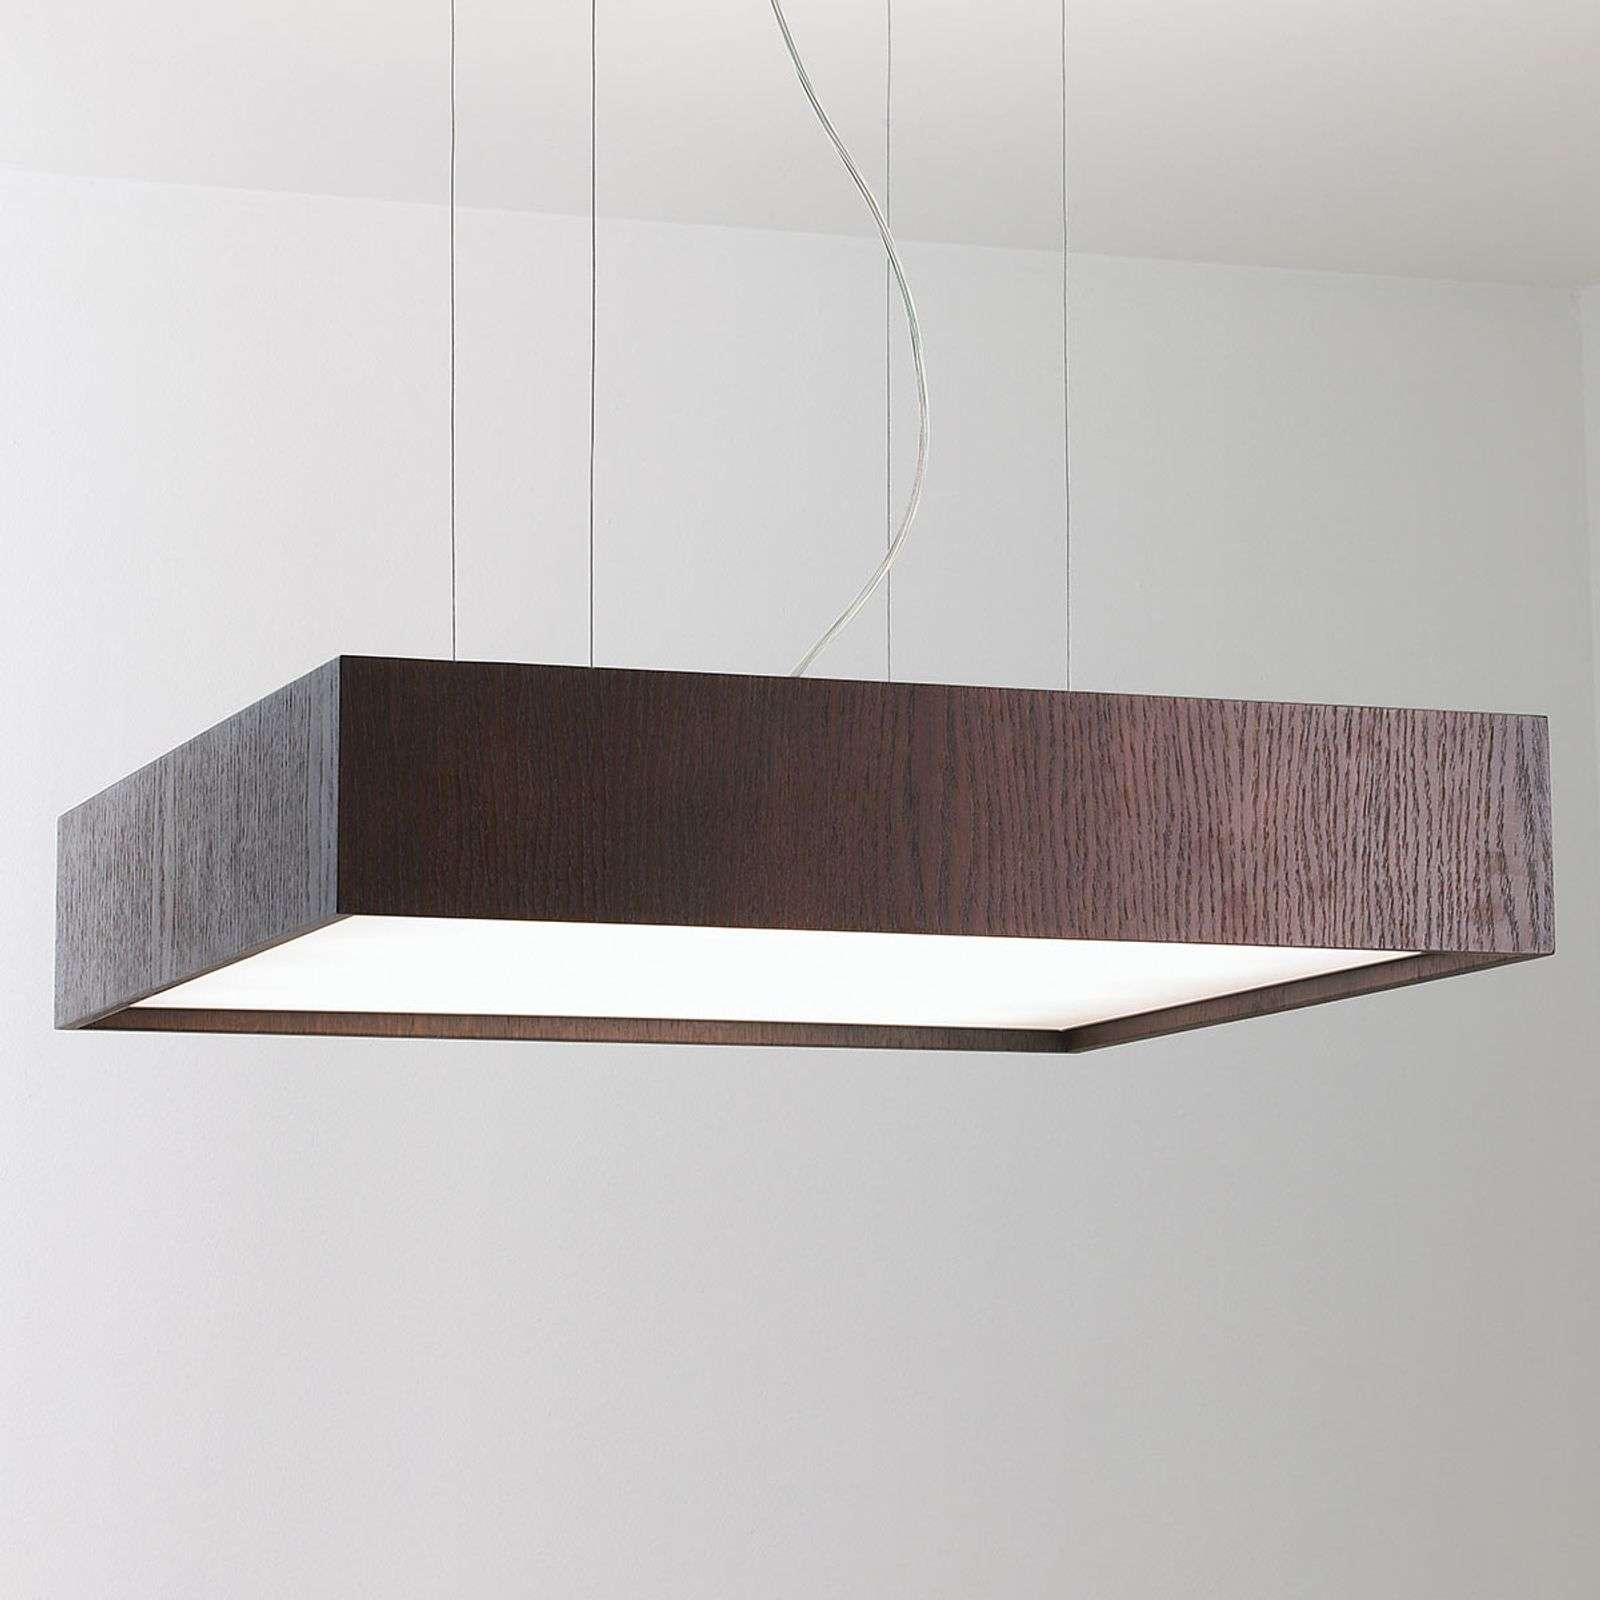 Suspension Carré S avec LED 60x60, wenge